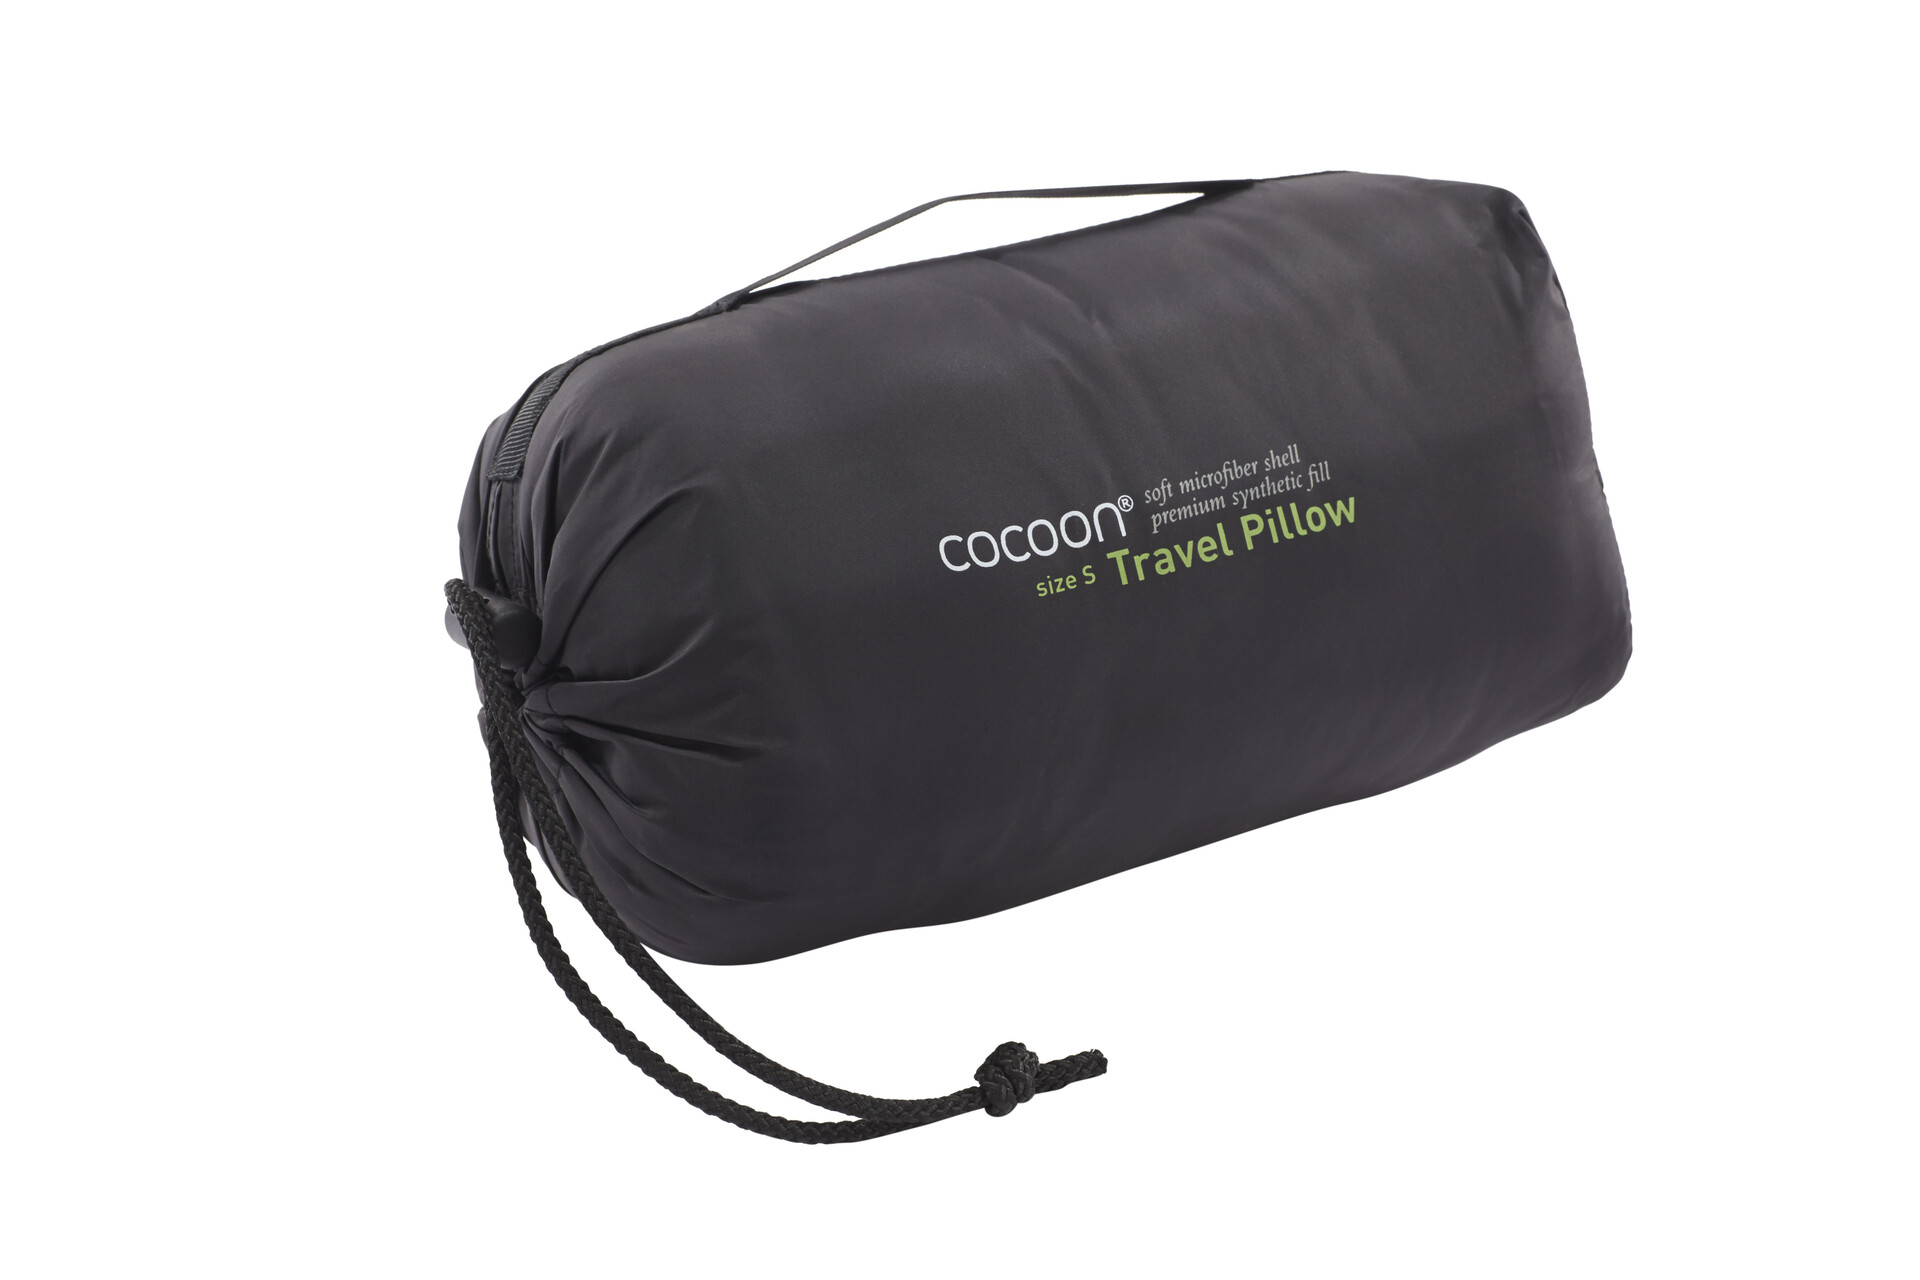 Cocoon Cocoon Cocoon Travel Pillow Nylon/Microfiber Small Charcoal/Smoke Grå (2019) f49afb